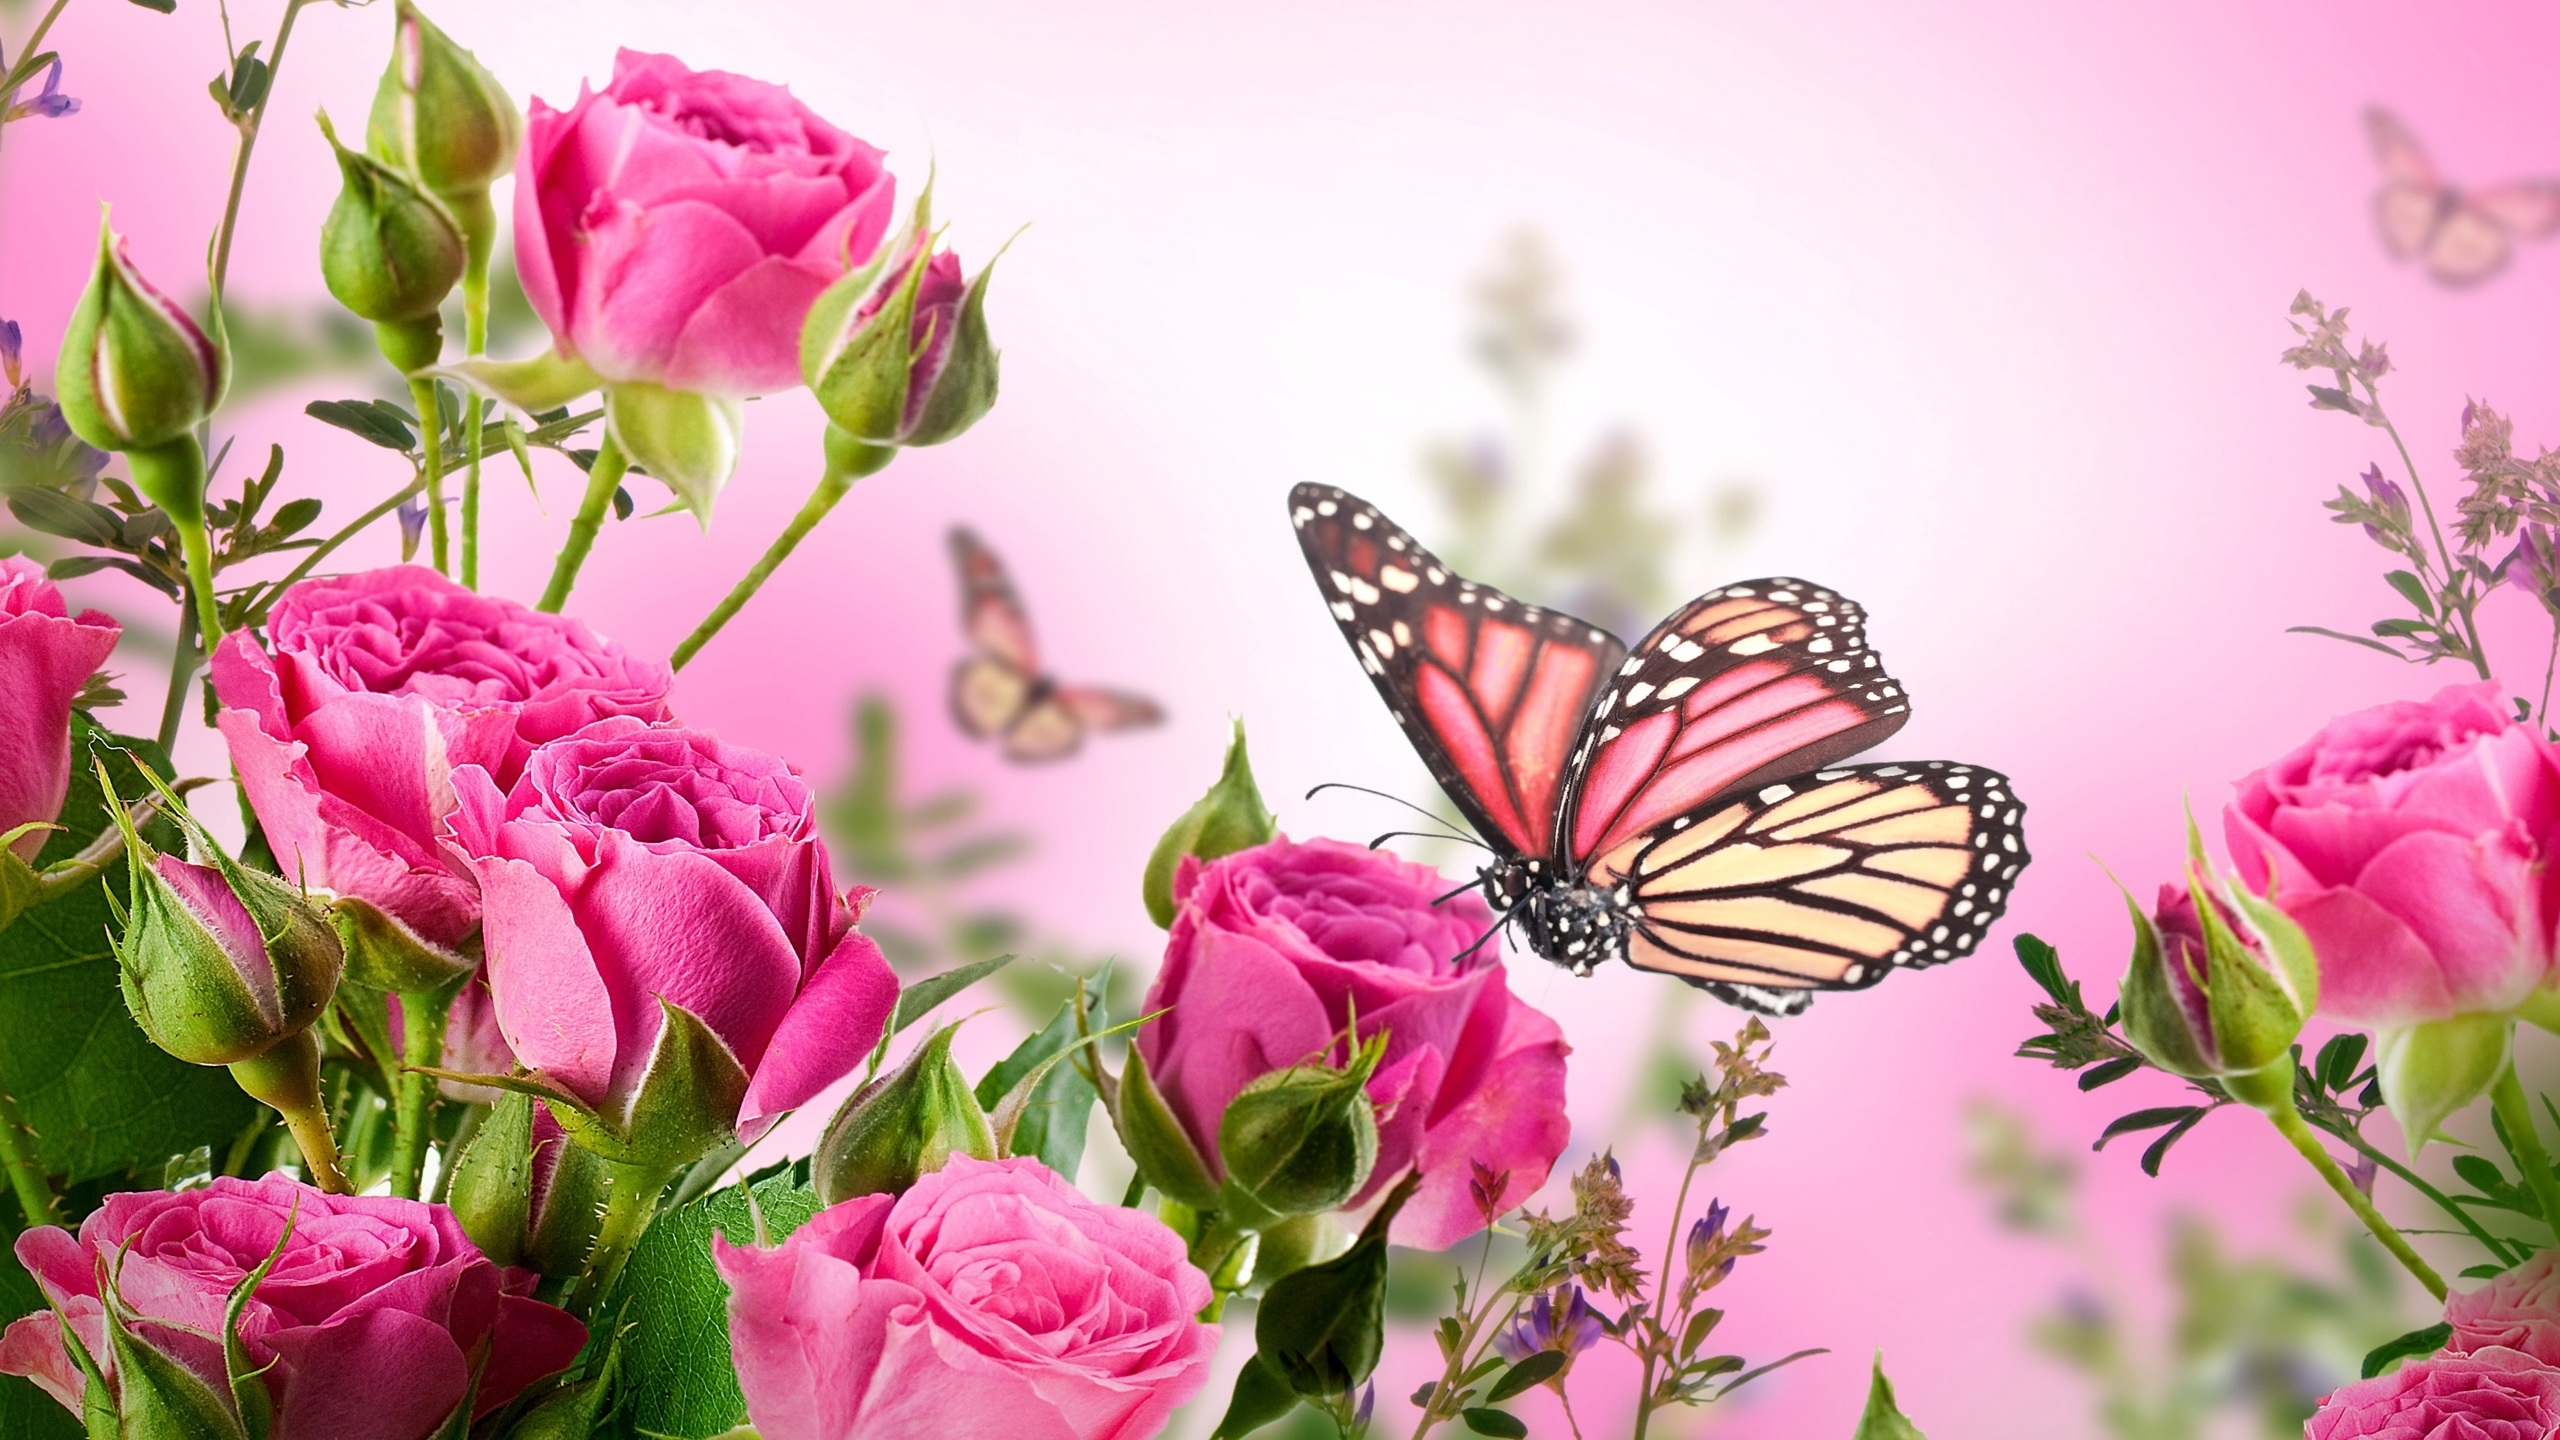 butterfly with flowers wallpapers al097b - media file | pixelstalk